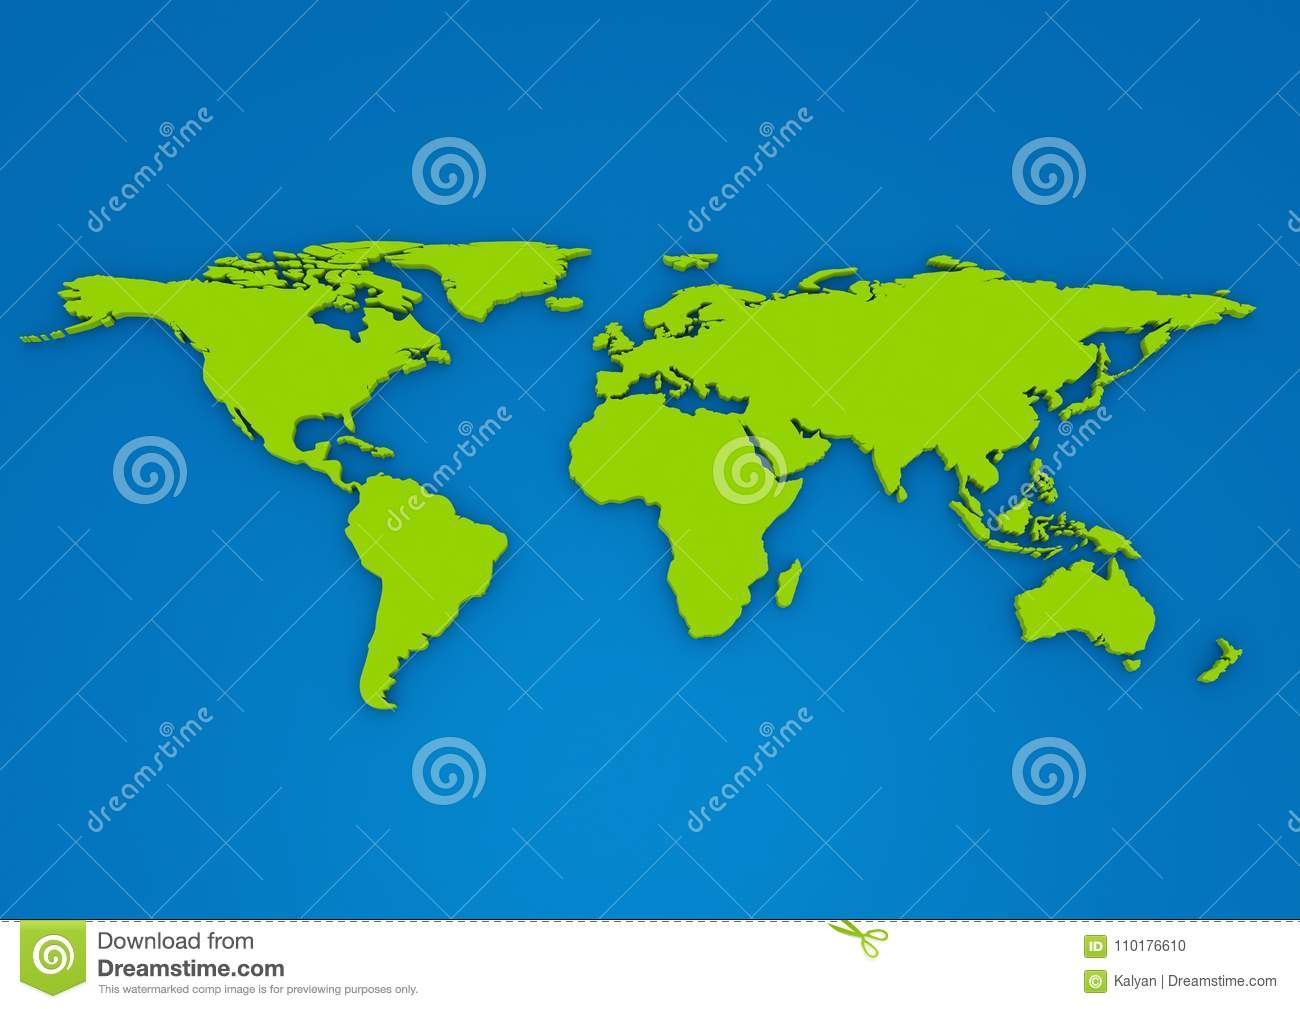 Green colour 3d extruded world map on blue background stock a green color flat world map extruded in 3d with shadow on a grey background gumiabroncs Gallery